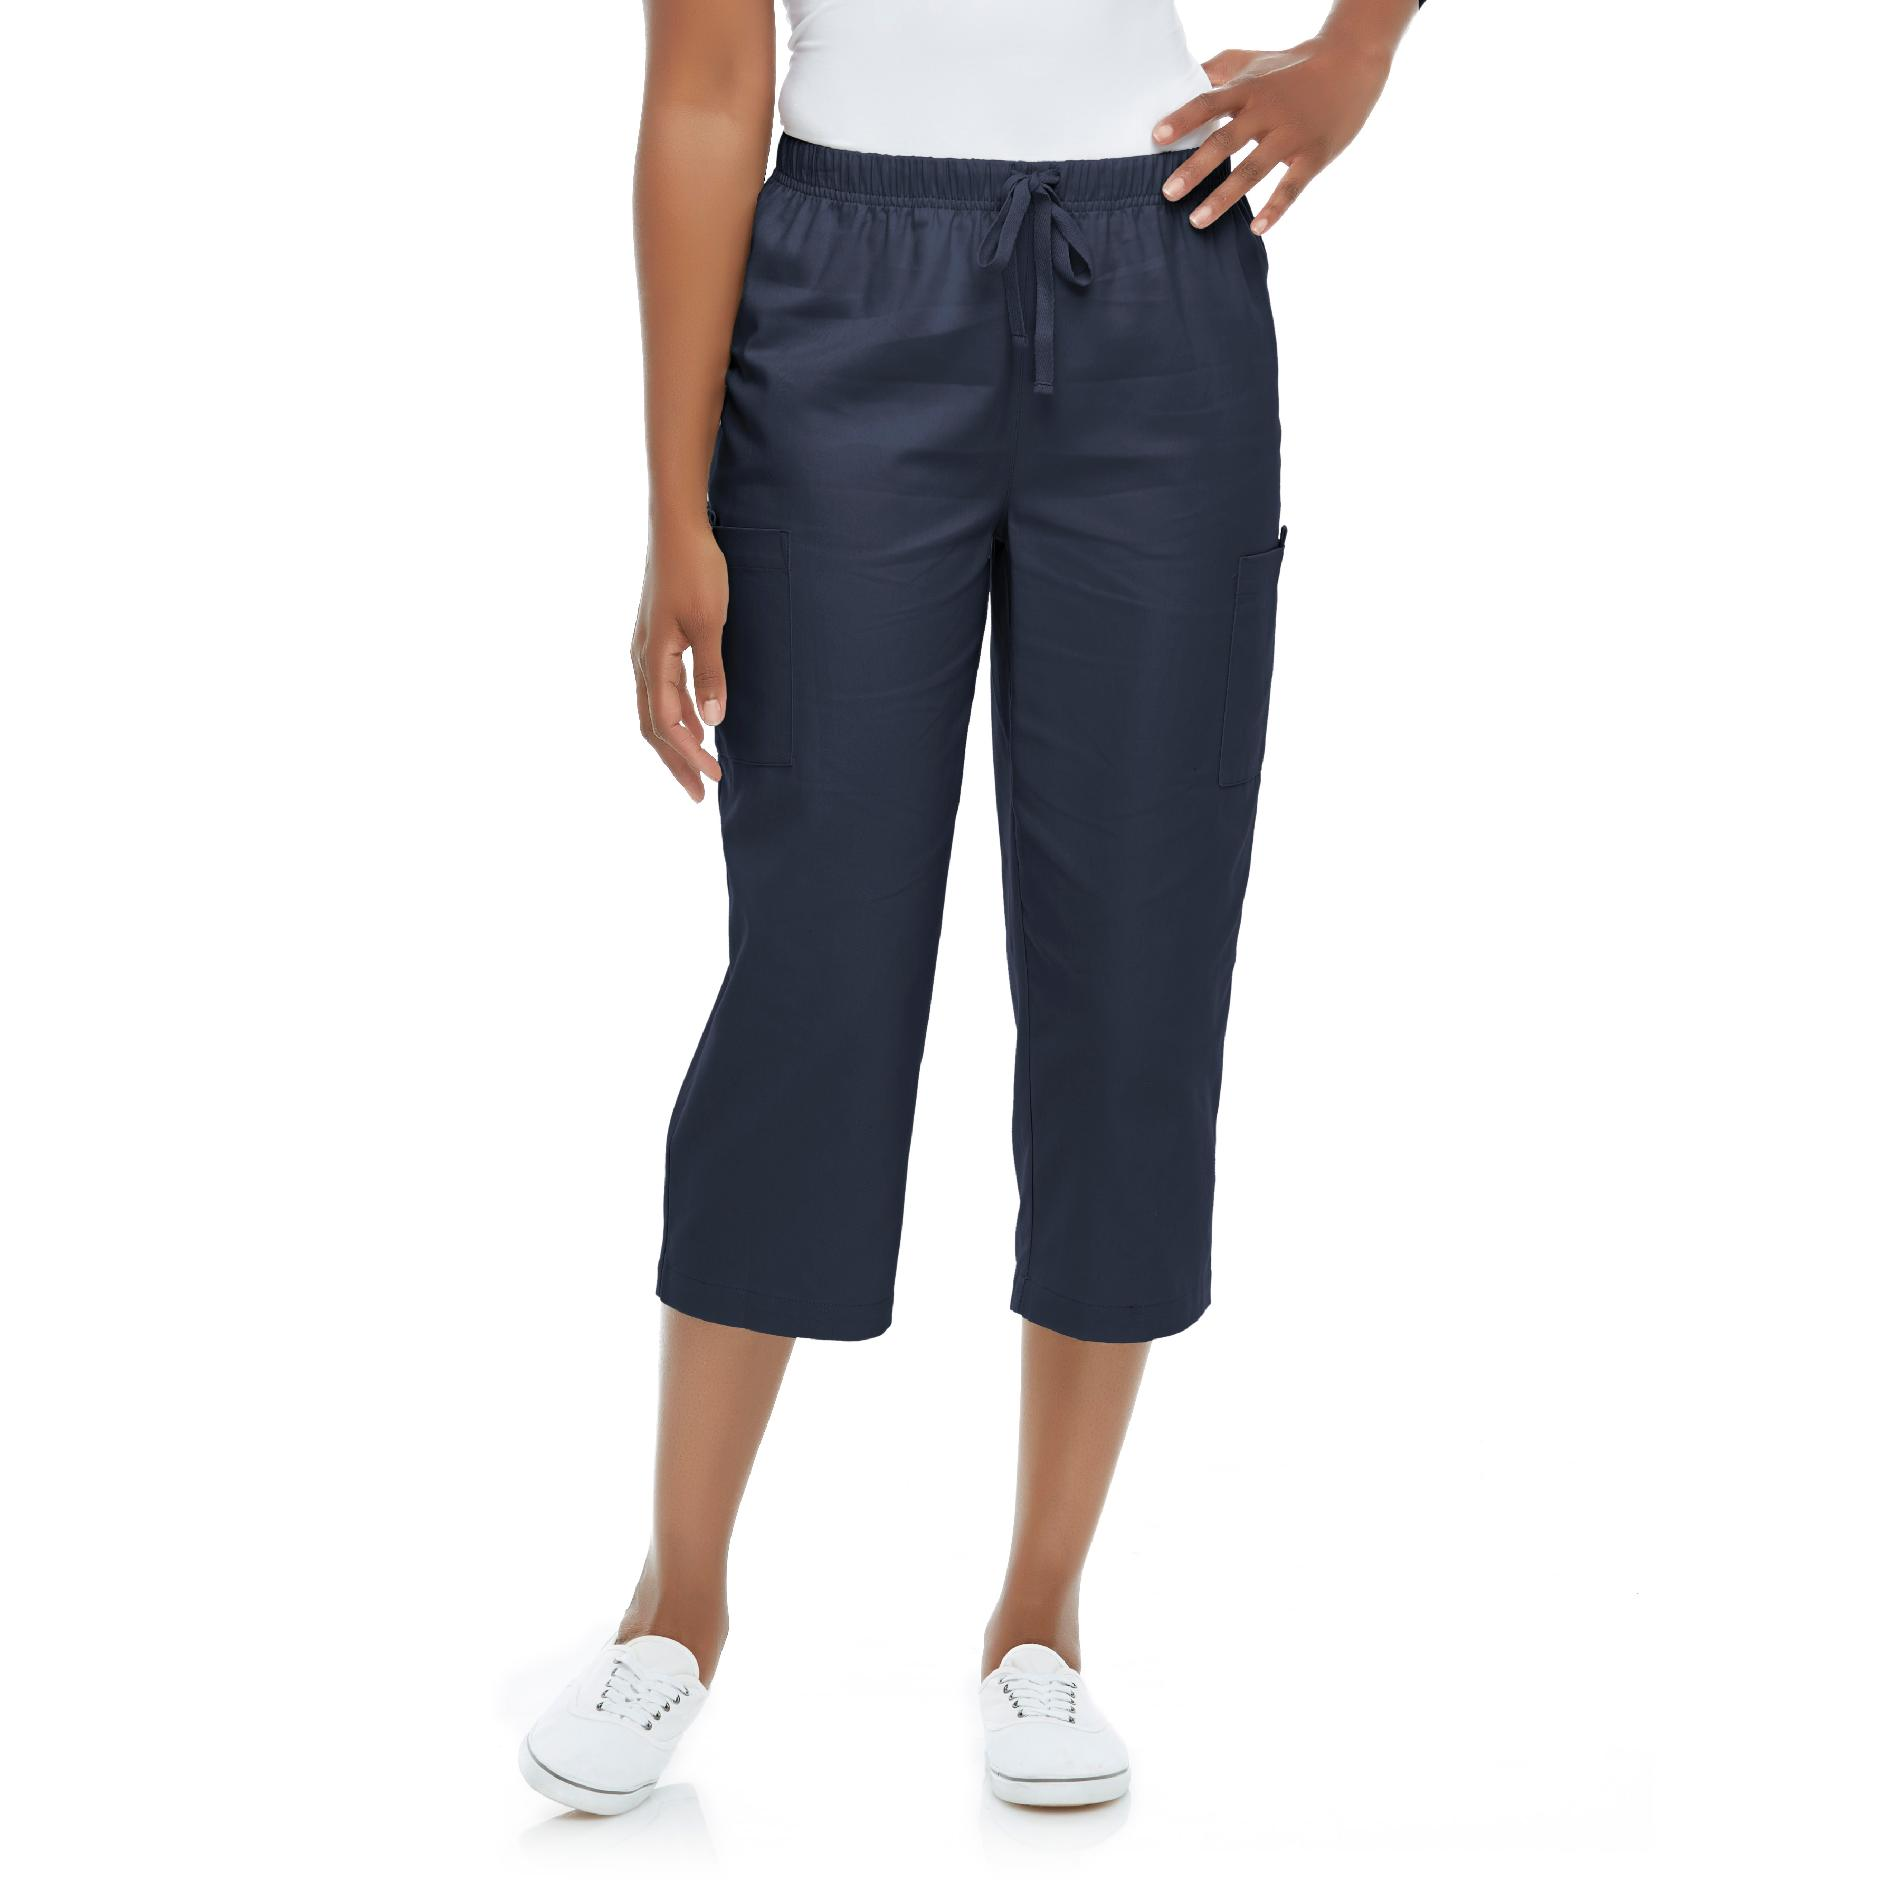 Basic Editions Women's Twill Capri Pants at Kmart.com